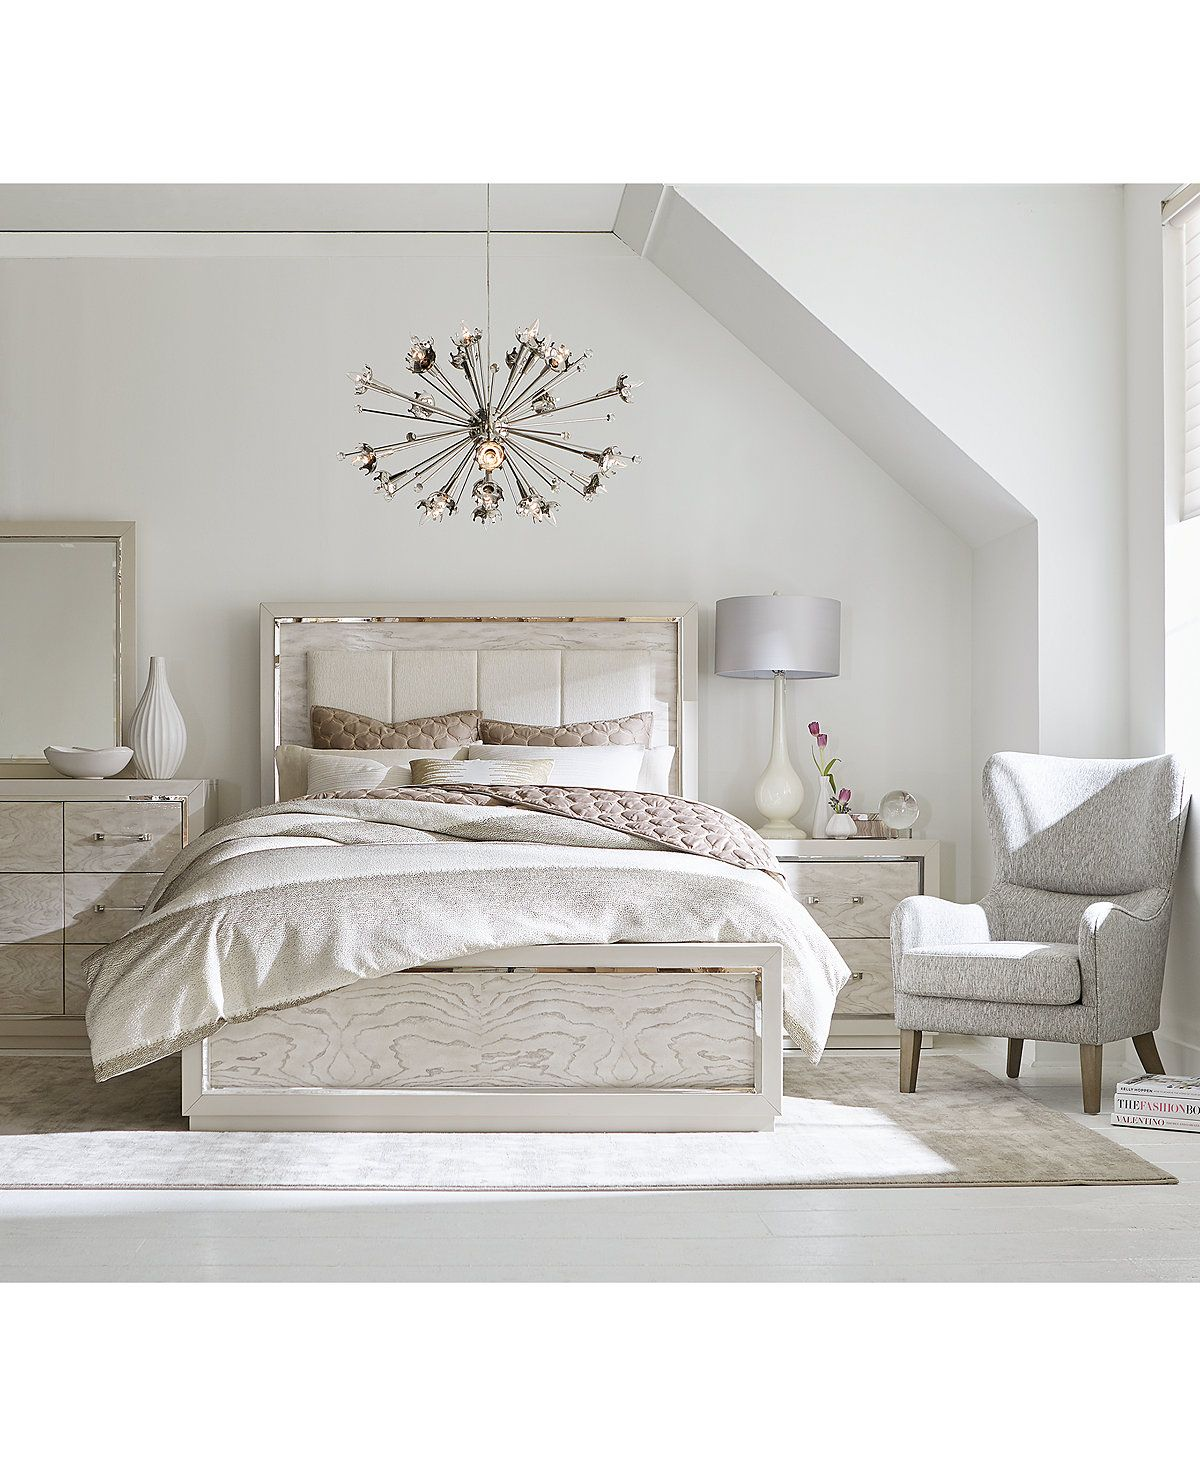 Pin by Victoria Ross on apartment decorating Bedroom